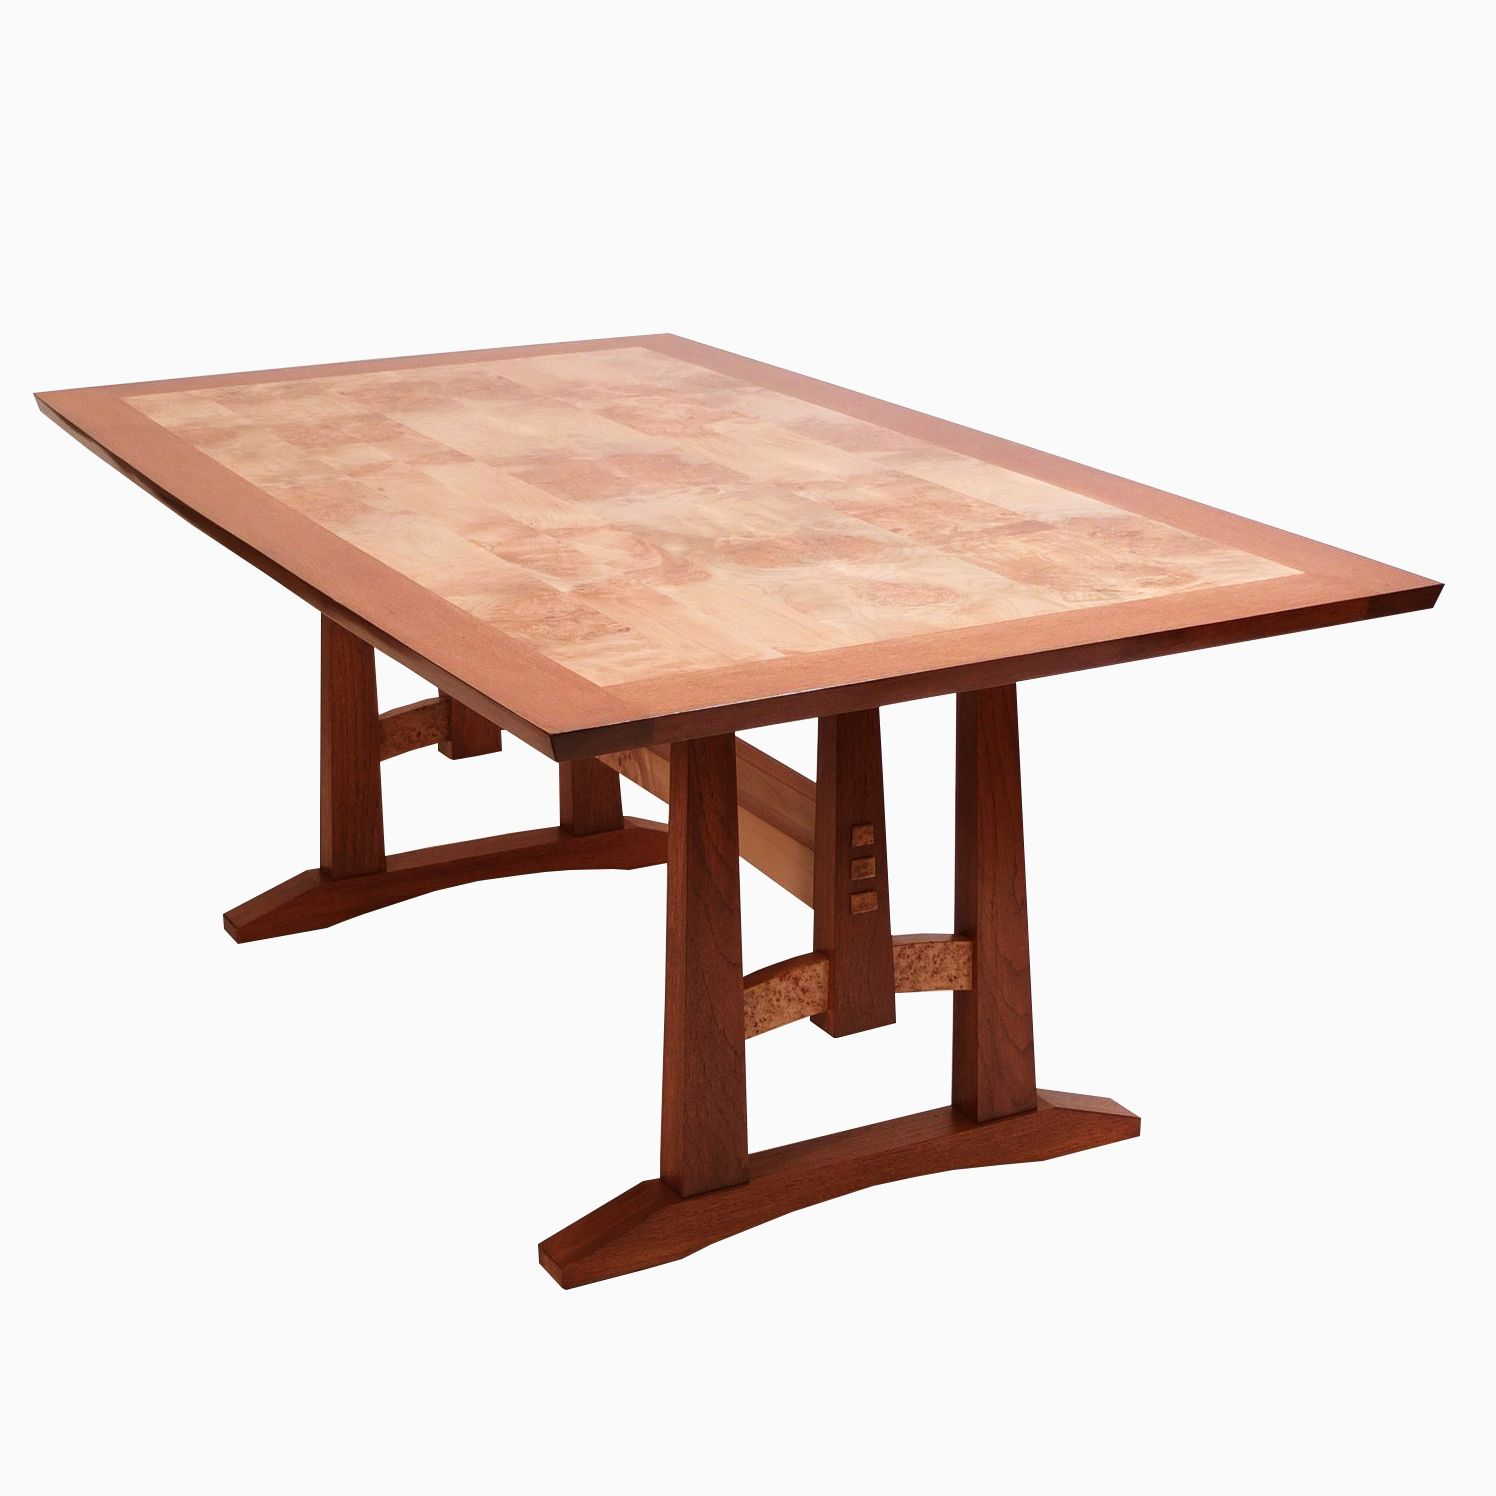 Hand Crafted Oak And Burl Maple Dining Table By Dogwood